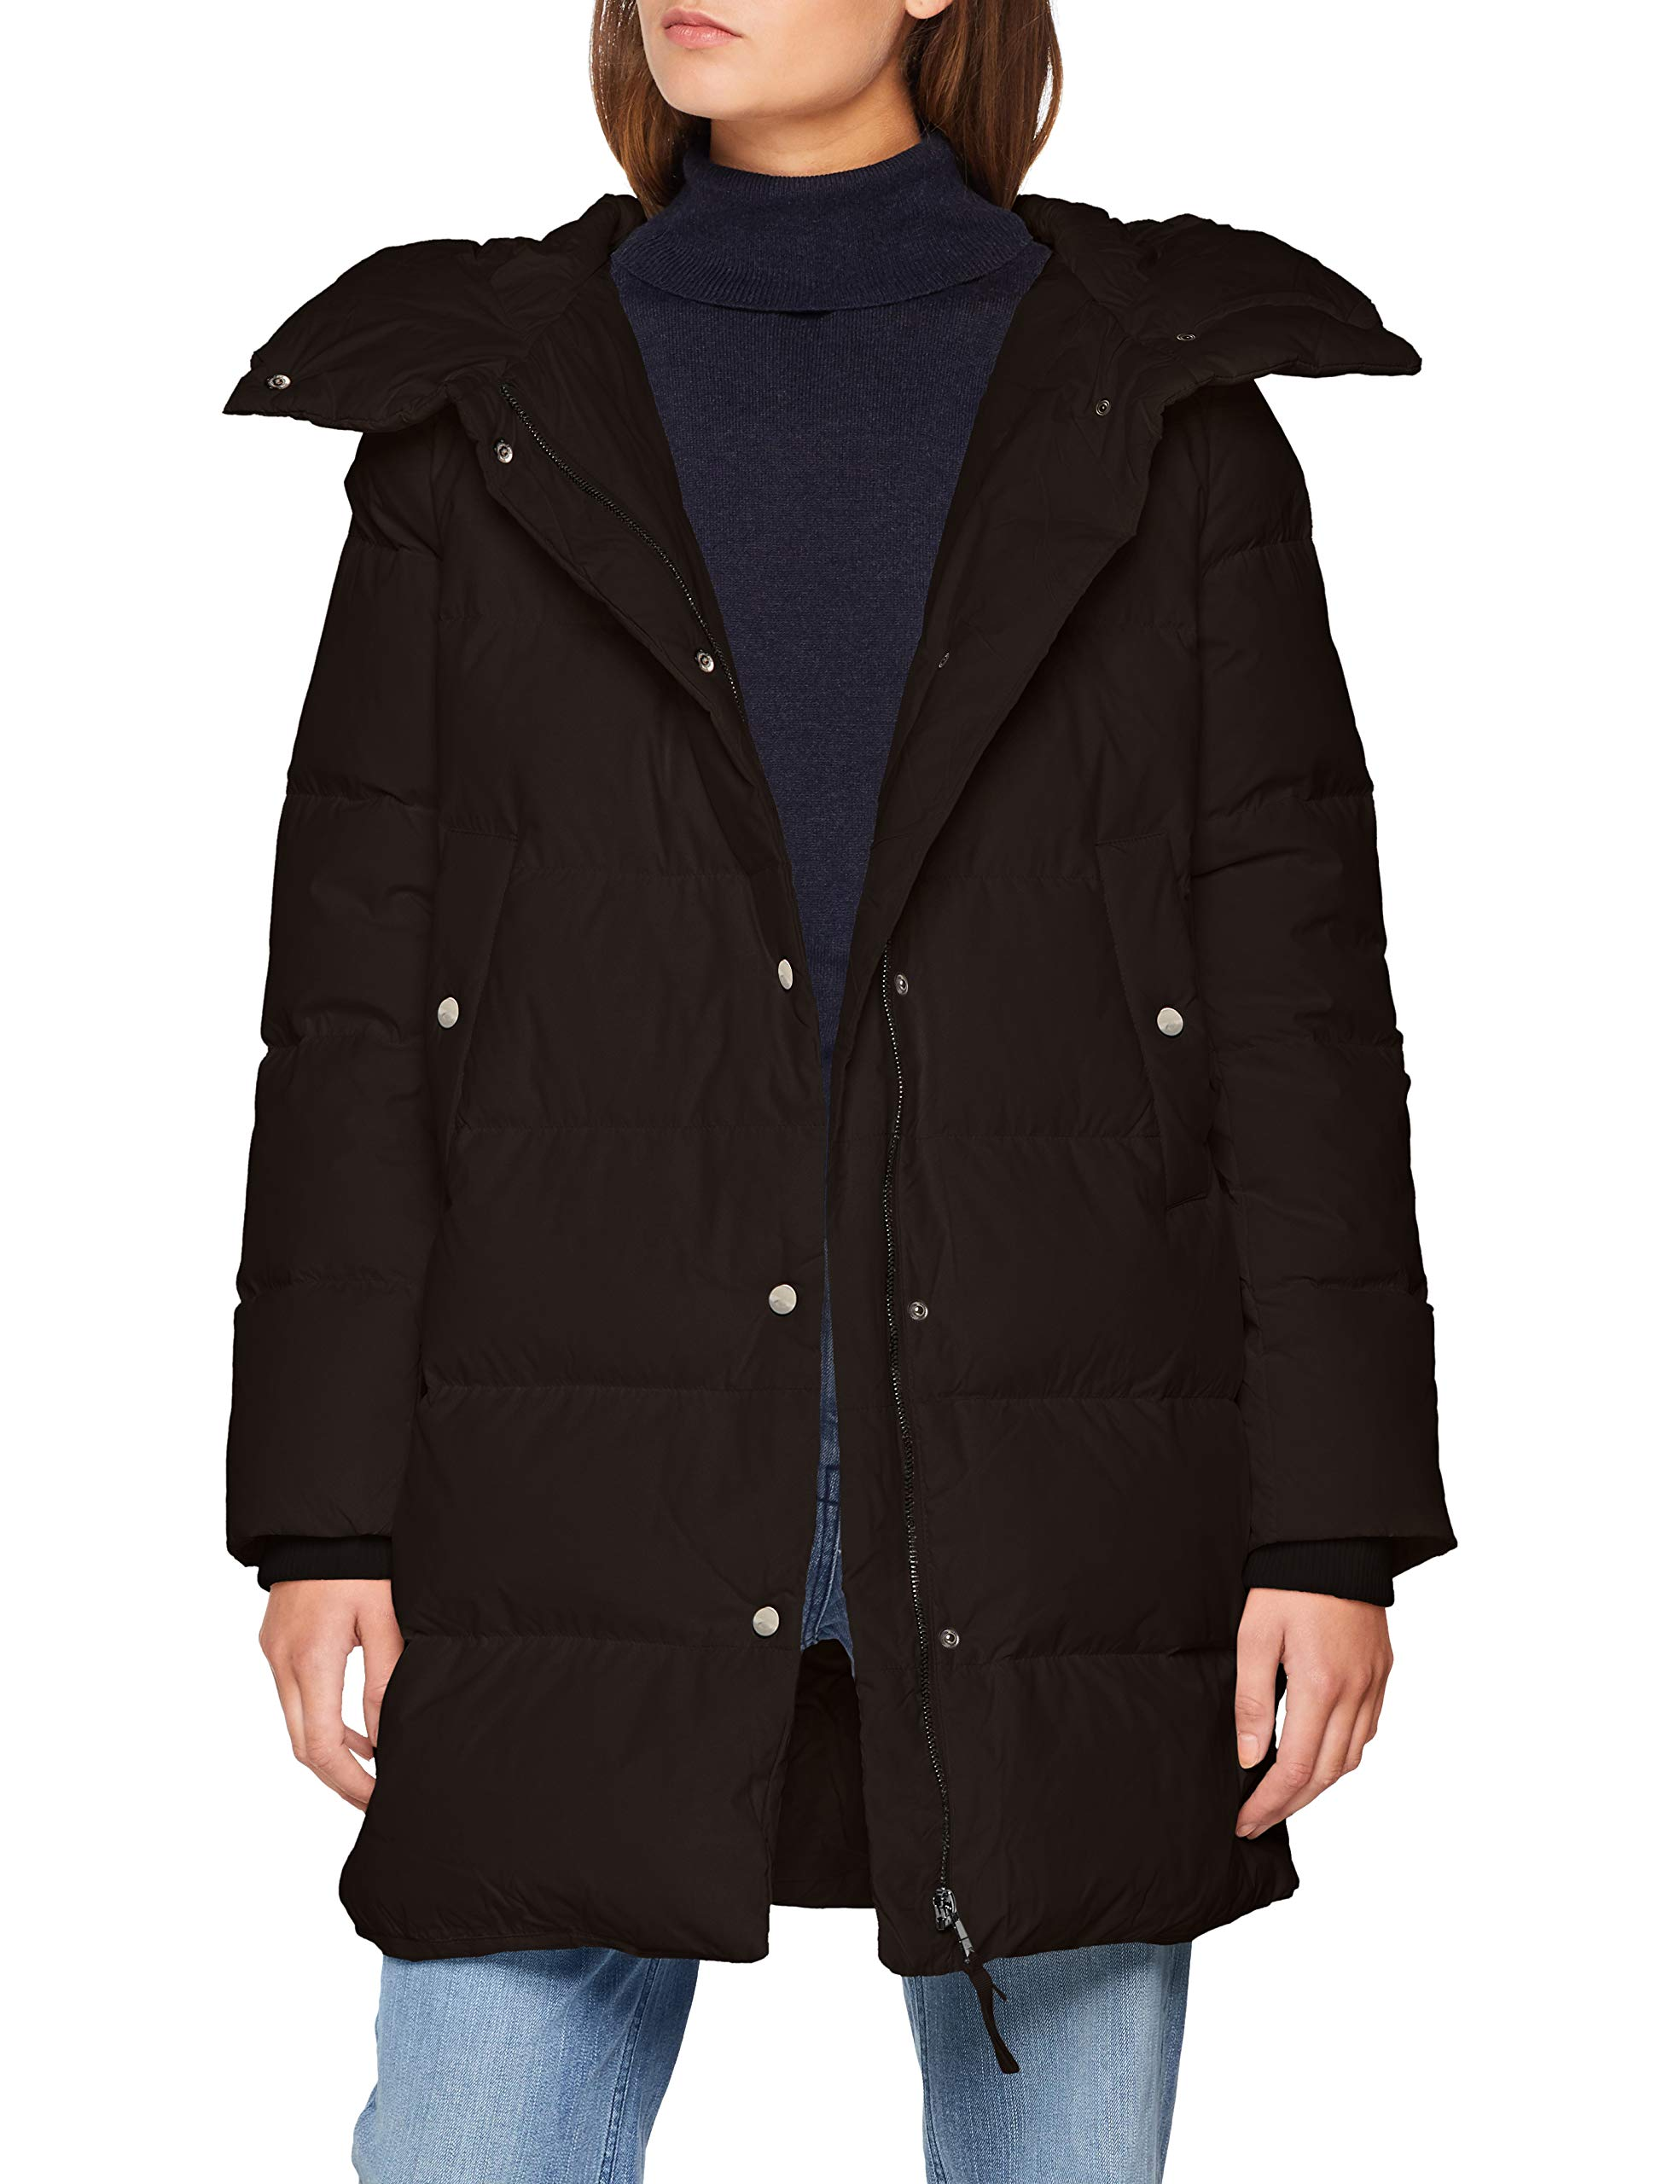 40 Springfield 3 Down Fabricant 4Manteau IntReal FemmeNoirnegro 1taille KJuclF1T3